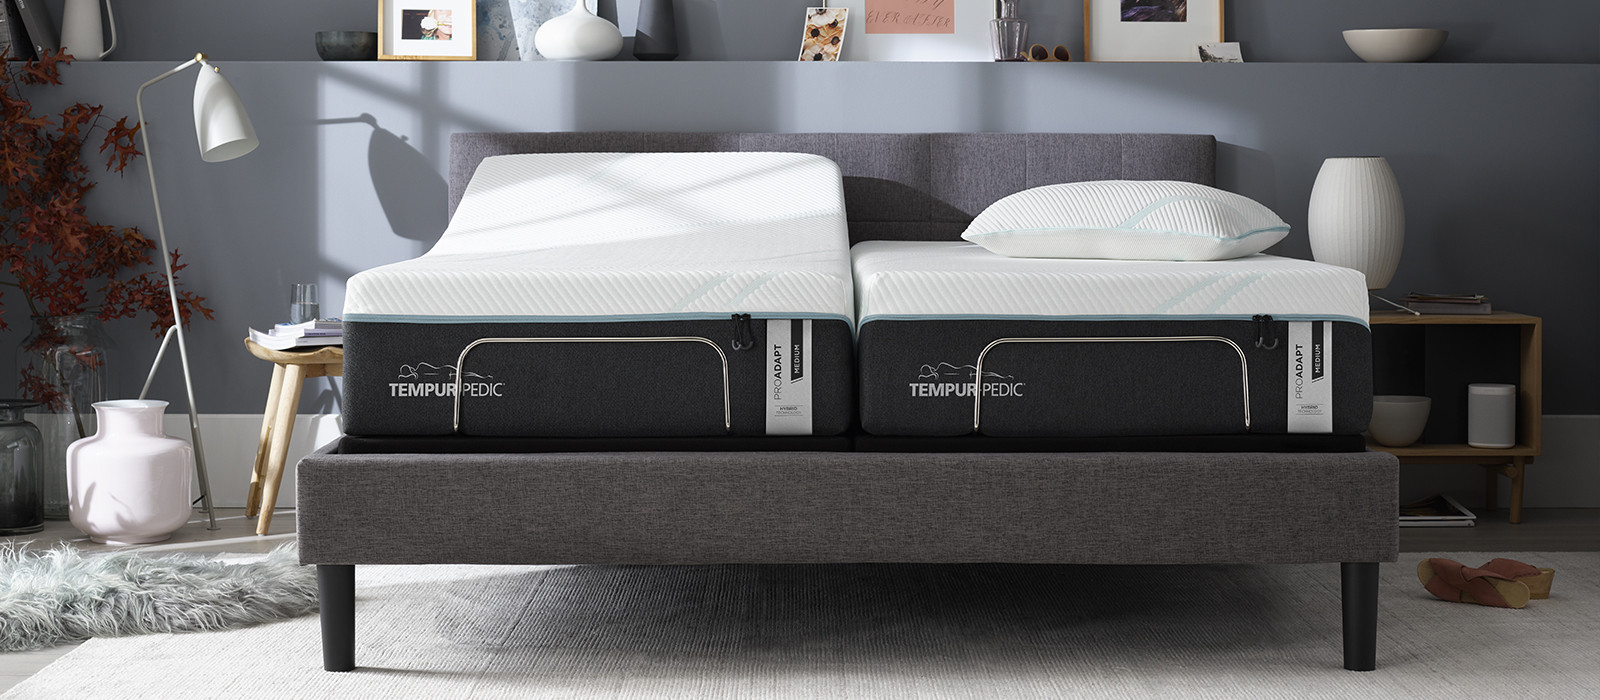 Adjustable Bed Base >> TEMPUR-ProAdapt® | Tempur-Pedic